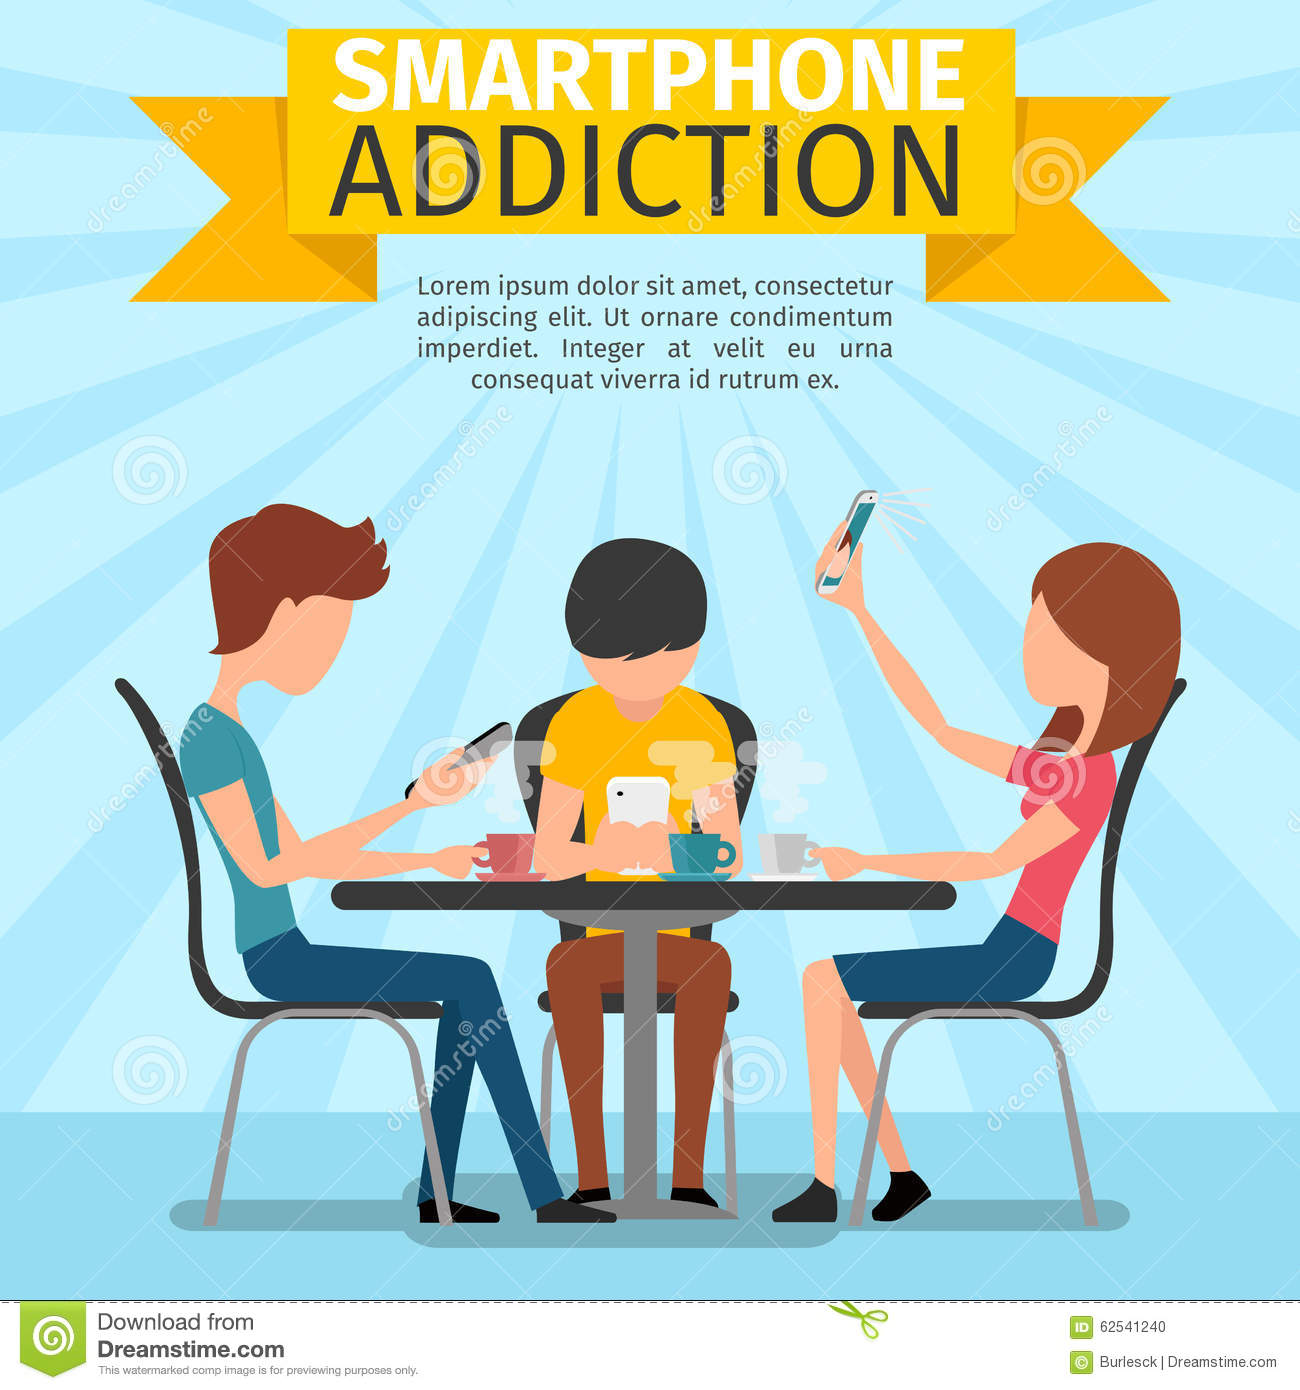 """addiction social media and people """"i think social media addiction is something being played up in the media because it is a hot topic right now,"""" singer says """"a lot of people are leveraging that for story ideas, or to trump up the value of something whether that's products that stop access to social sites at work or psychologists trying to sell different services there are motivators to."""